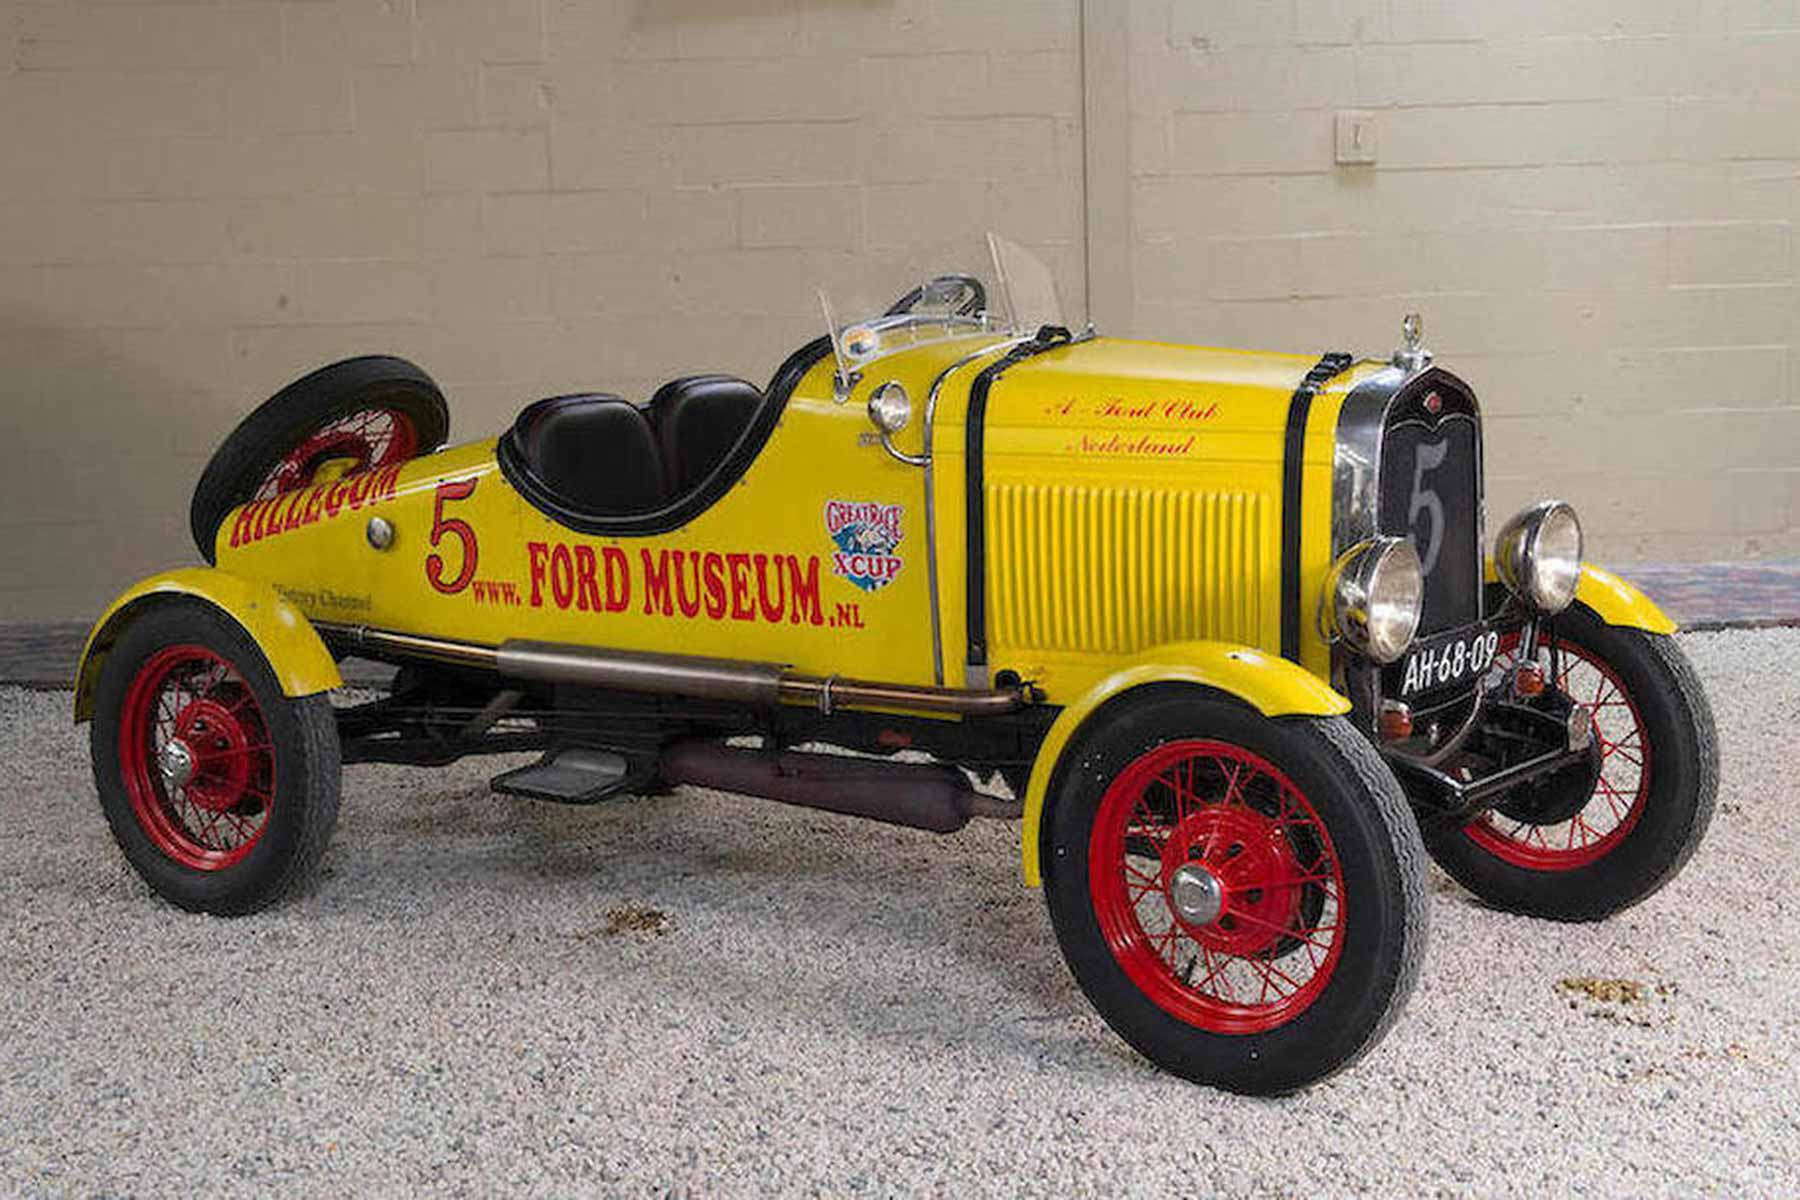 World's largest collection of classic Fords is up for auction